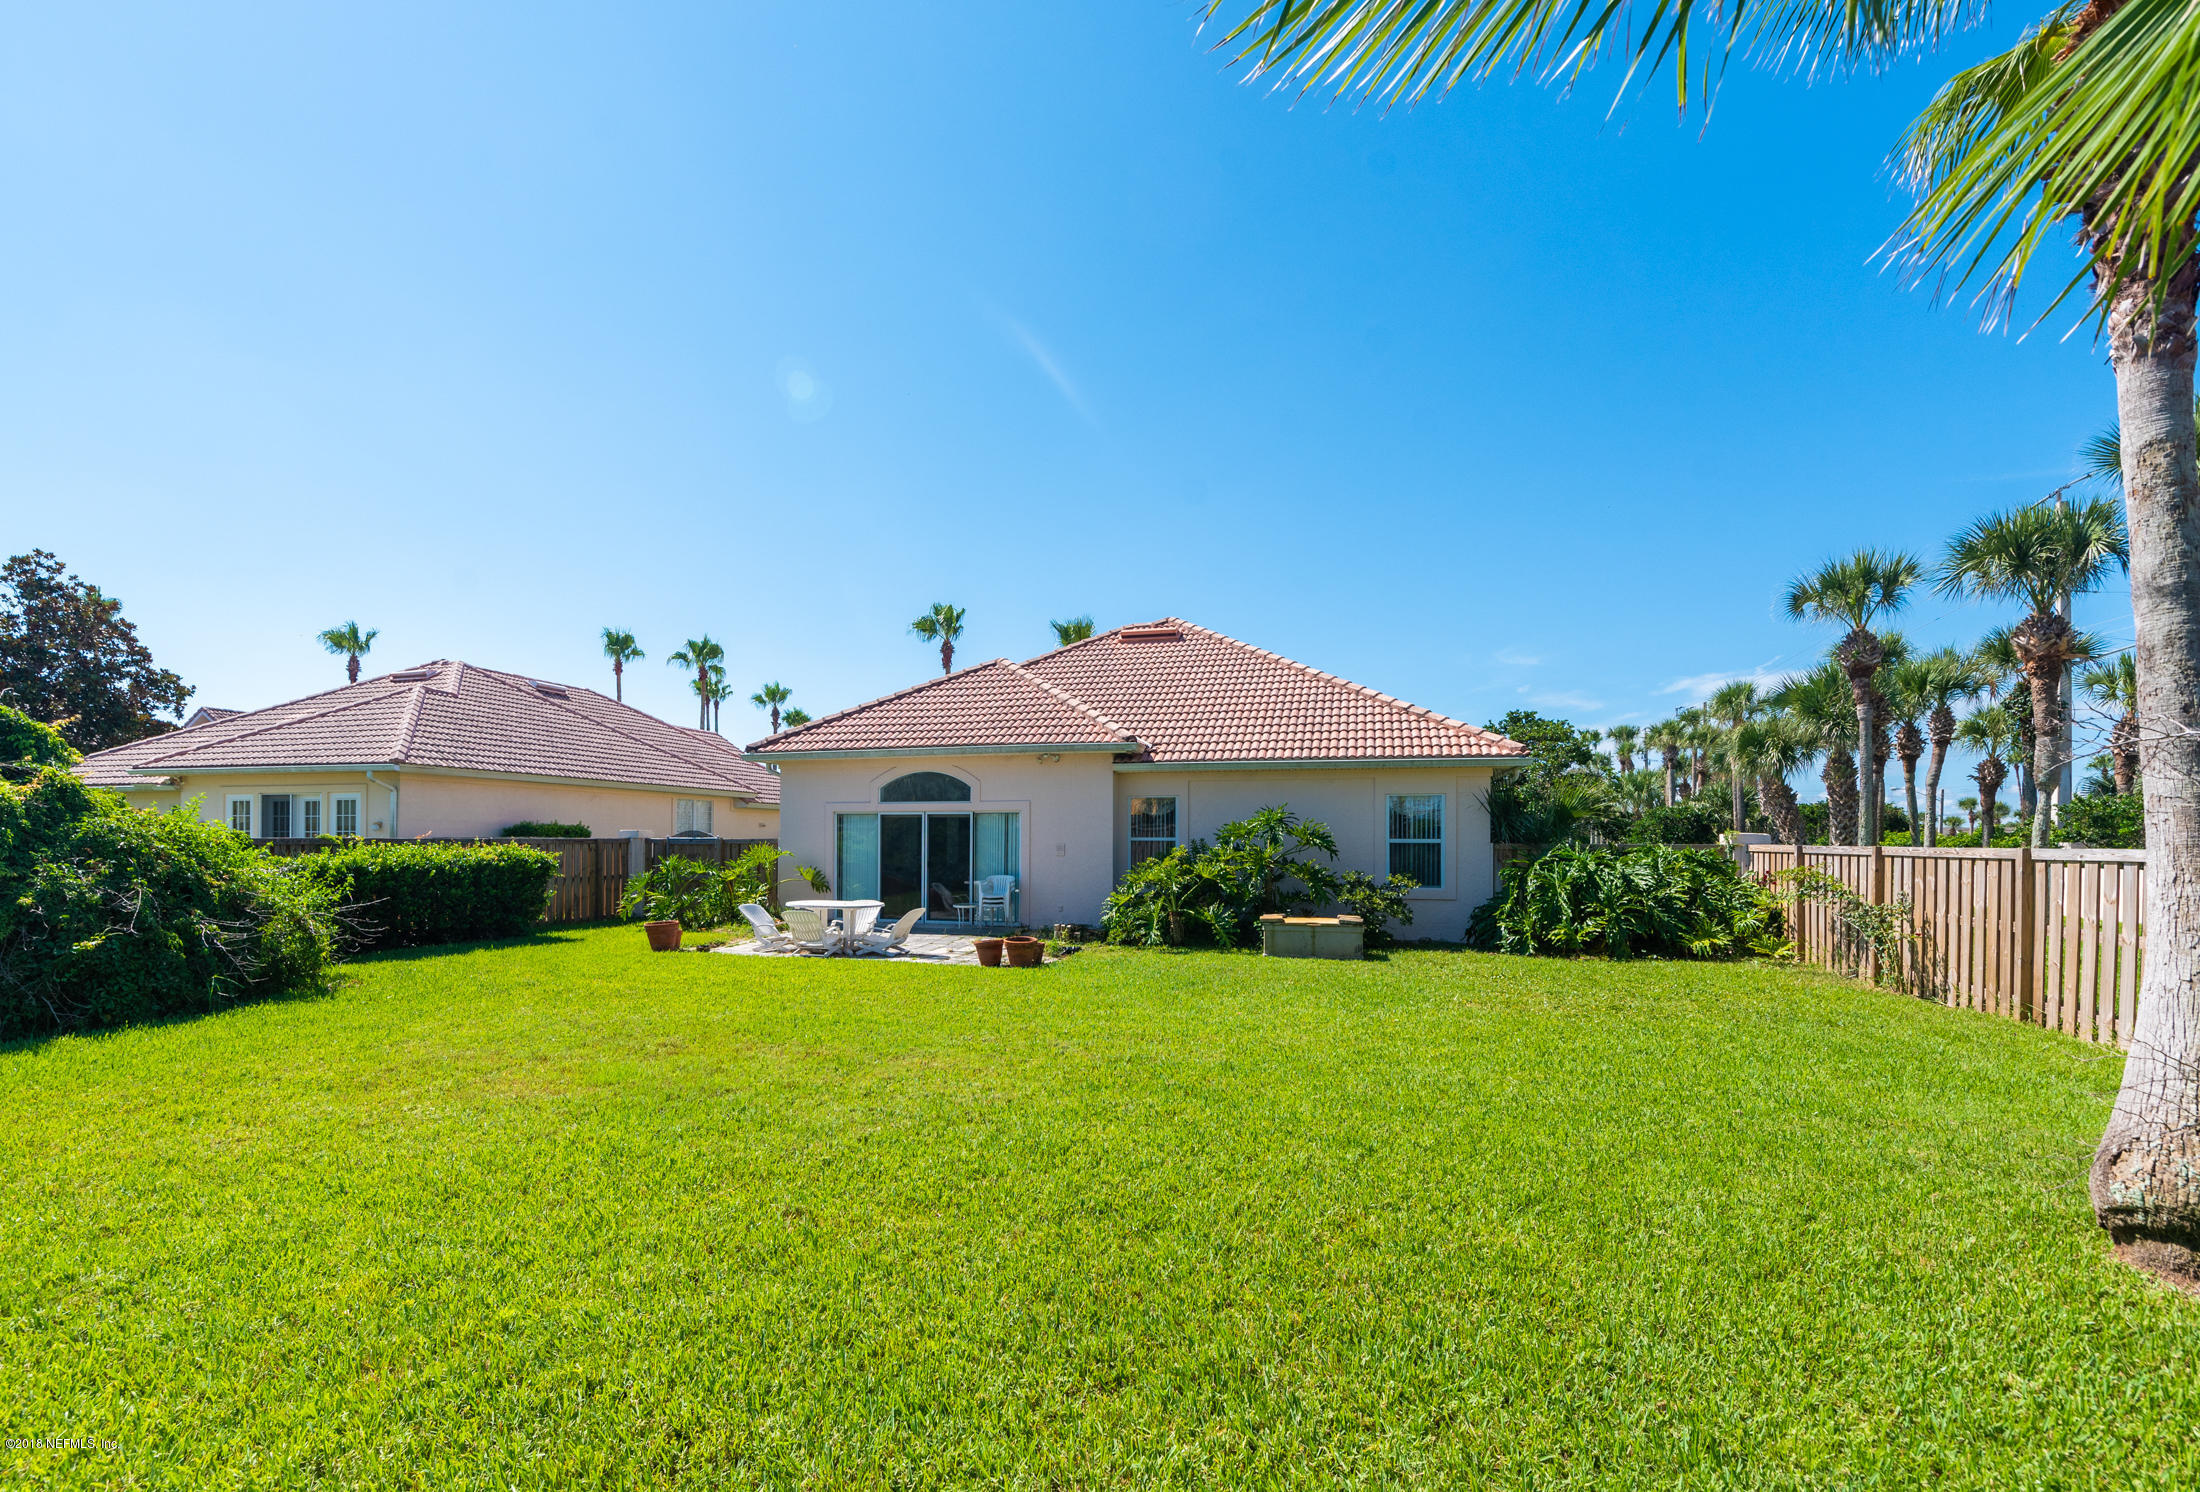 112 SEA GARDEN, ST AUGUSTINE, FLORIDA 32080, 3 Bedrooms Bedrooms, ,2 BathroomsBathrooms,Residential - single family,For sale,SEA GARDEN,946256